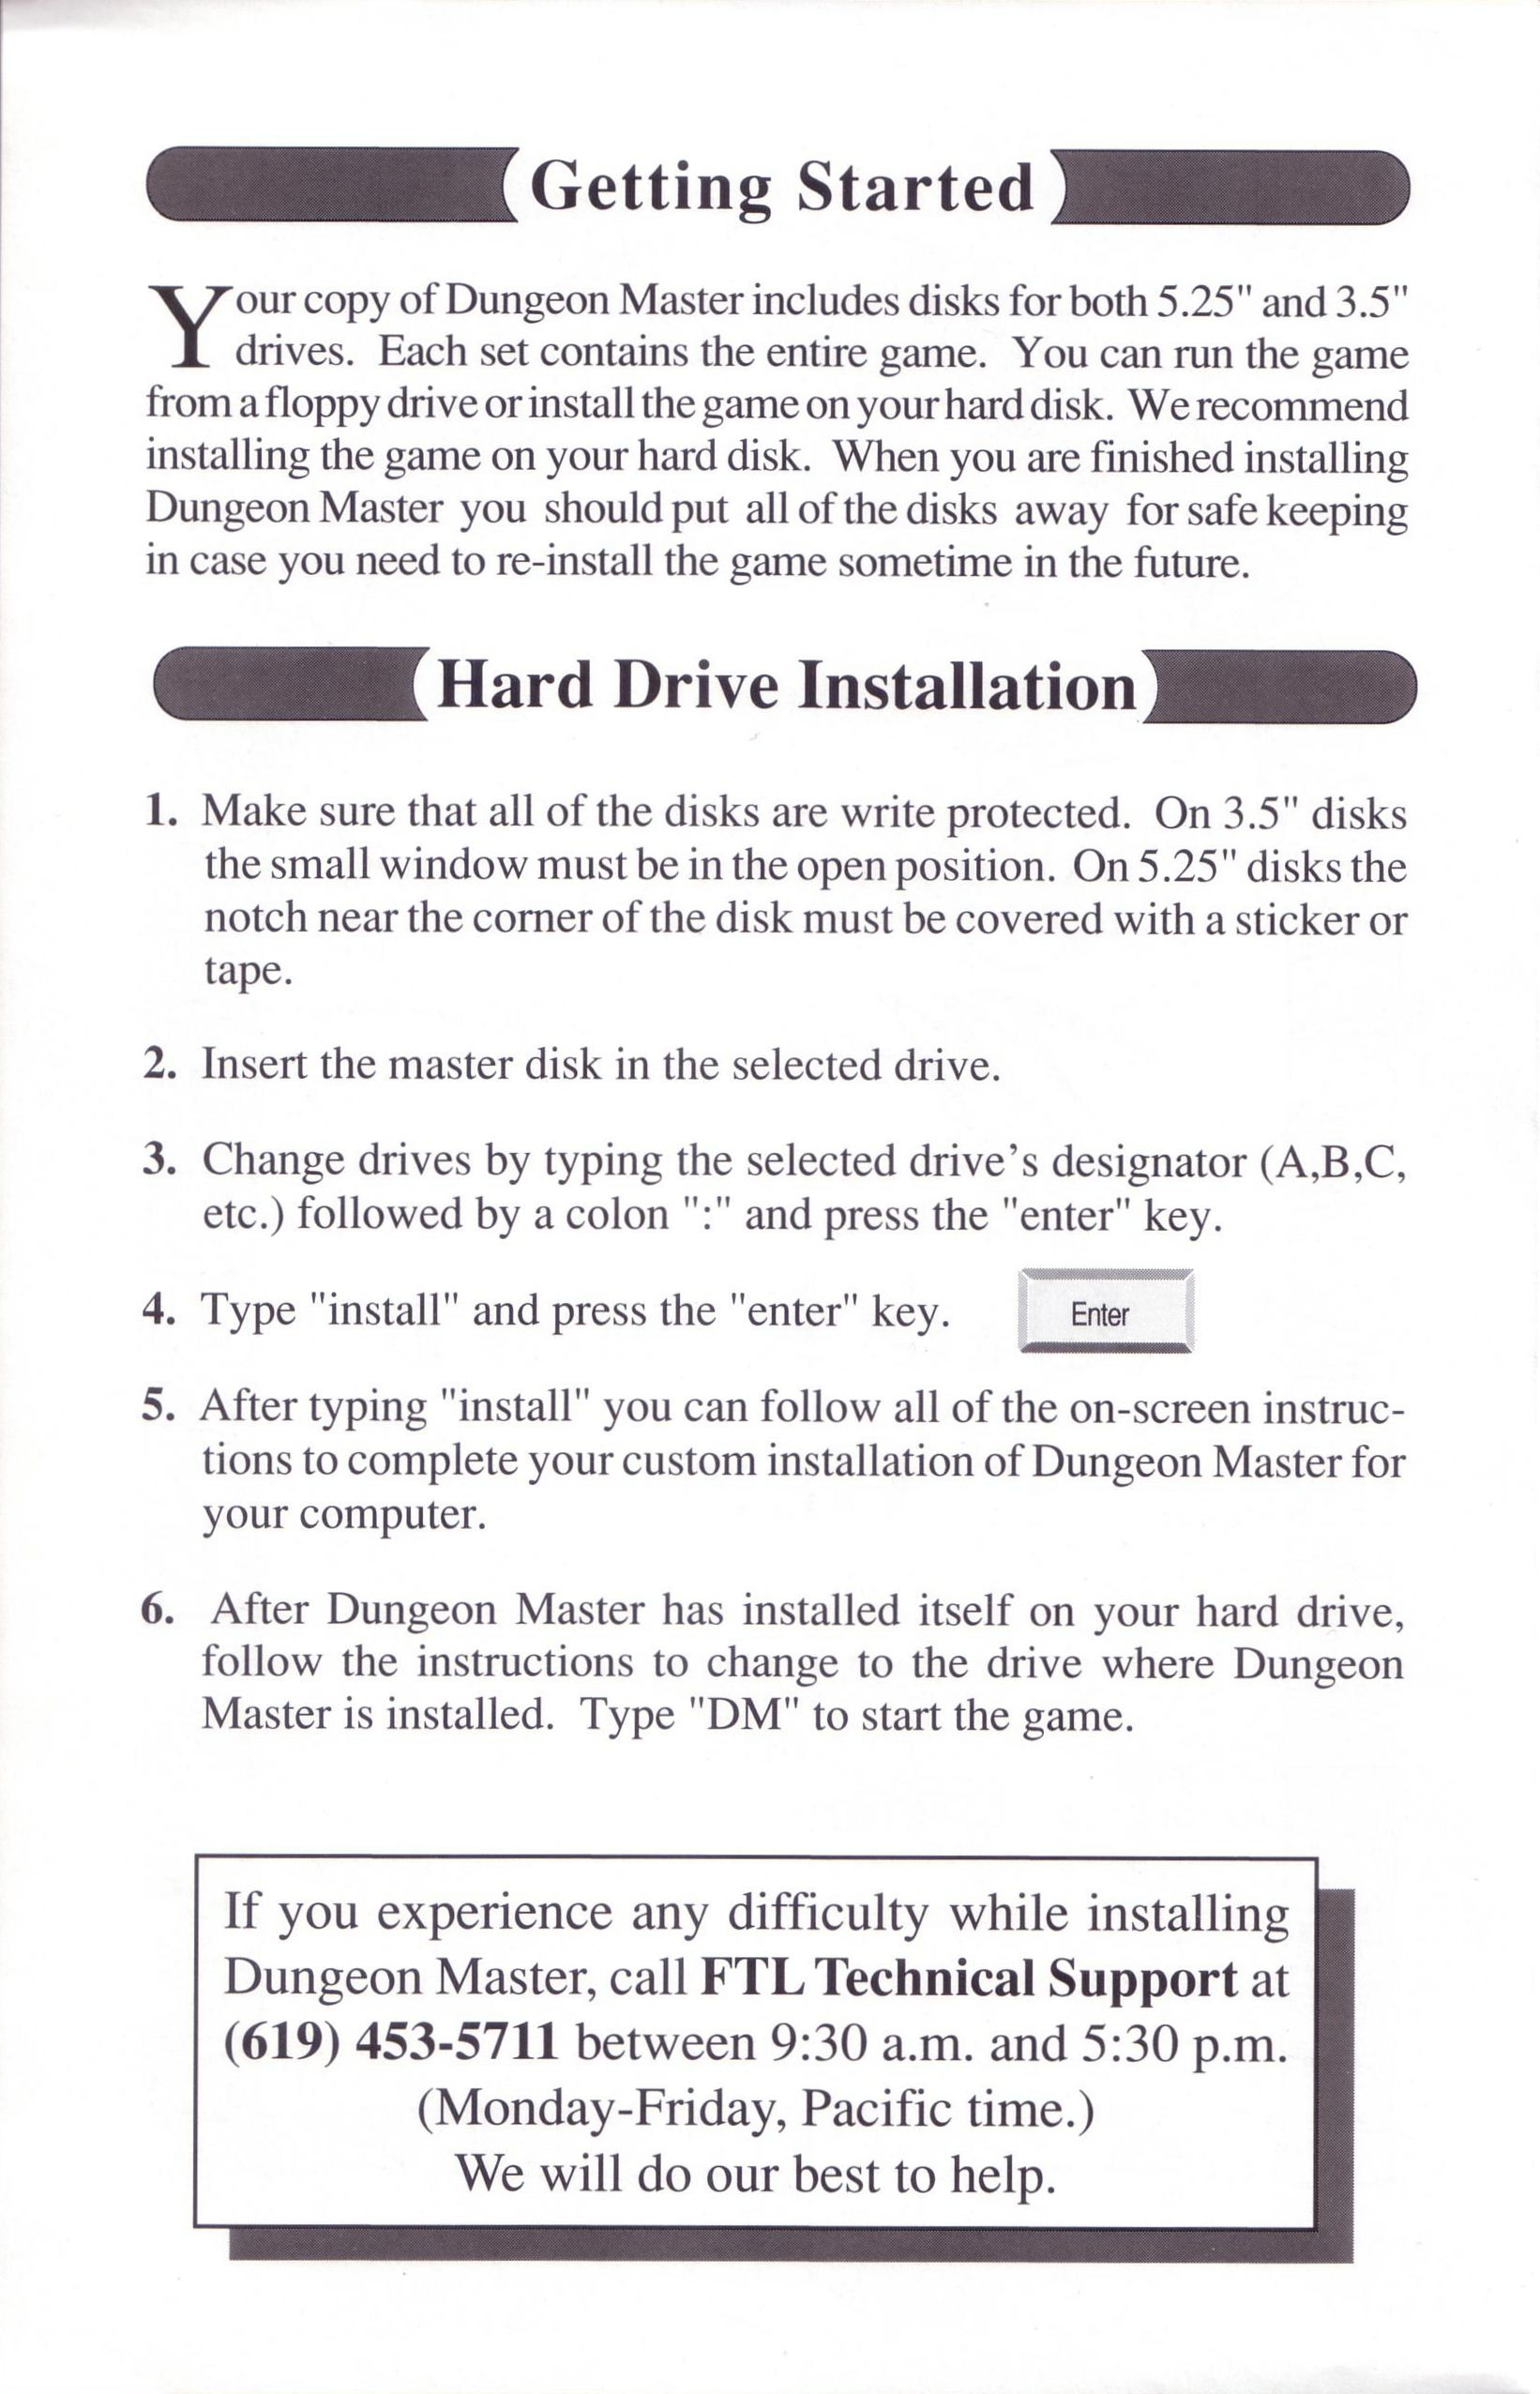 Dungeon Master for PC with FTL Sound Adapter (US Release) - Quick Start Guide Page 2